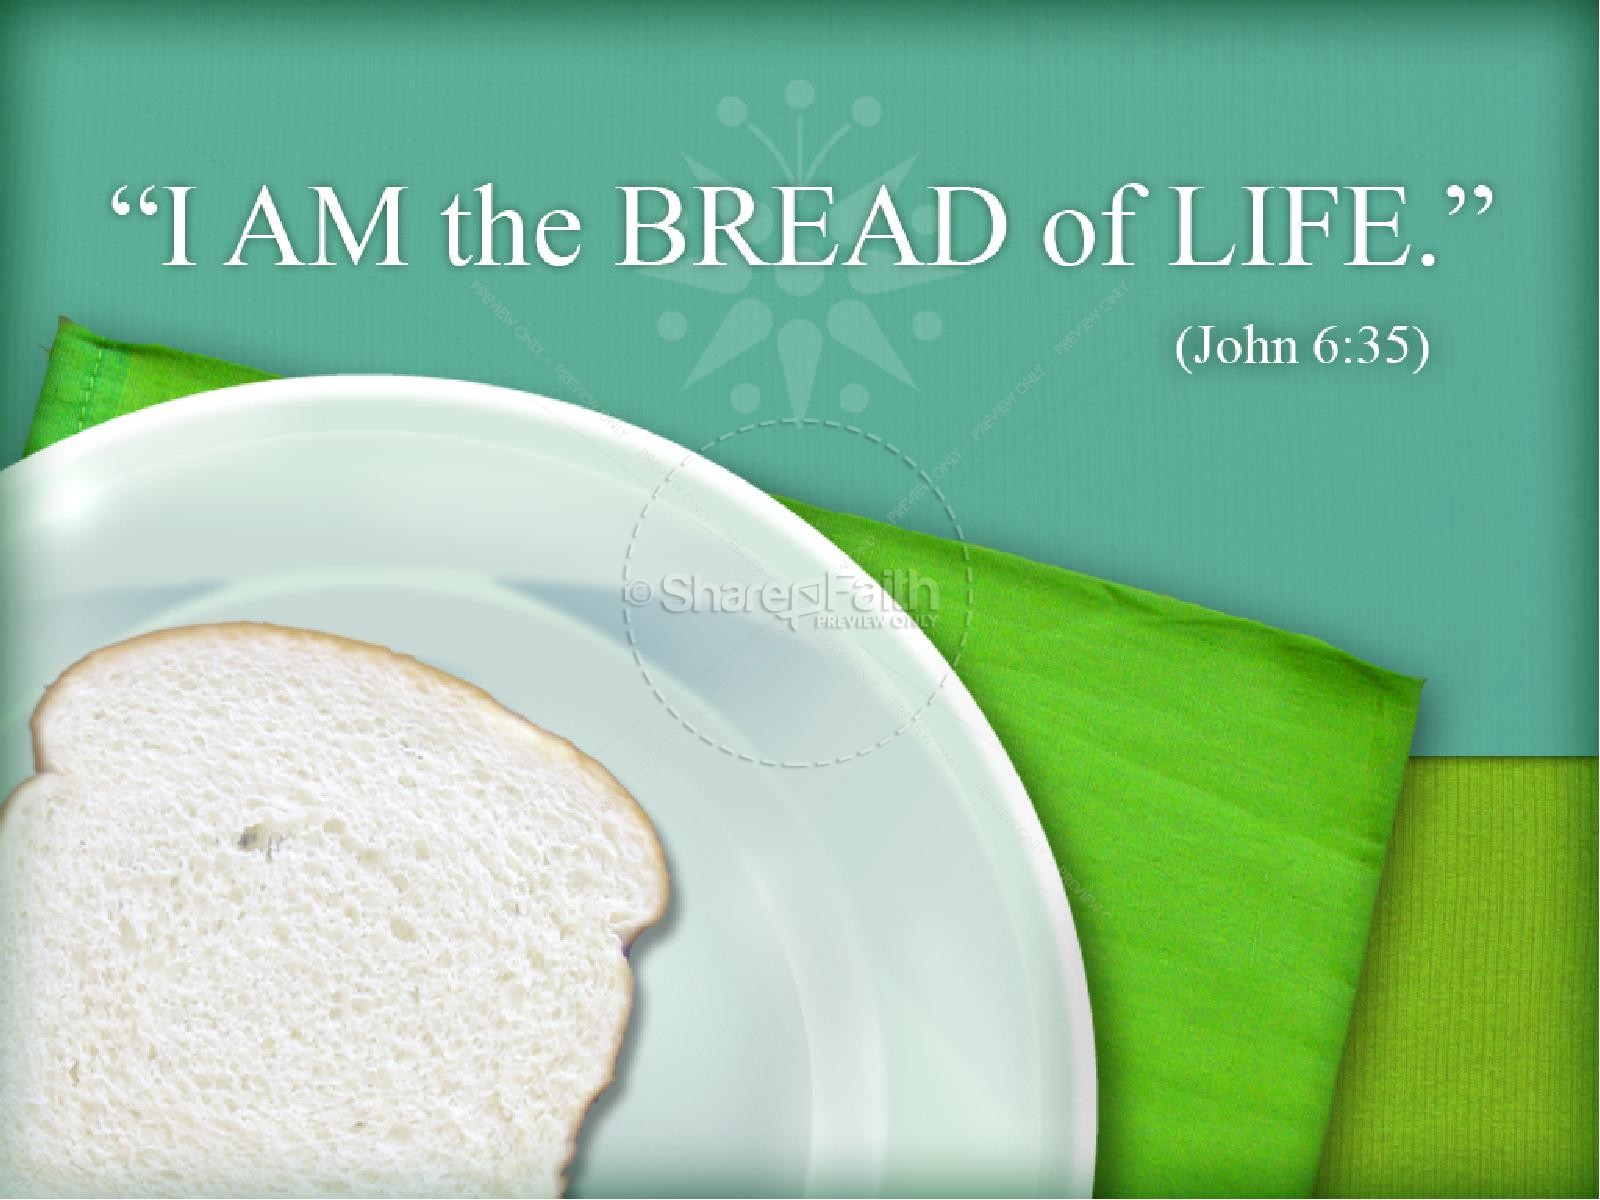 Our Daily Bread | slide 4